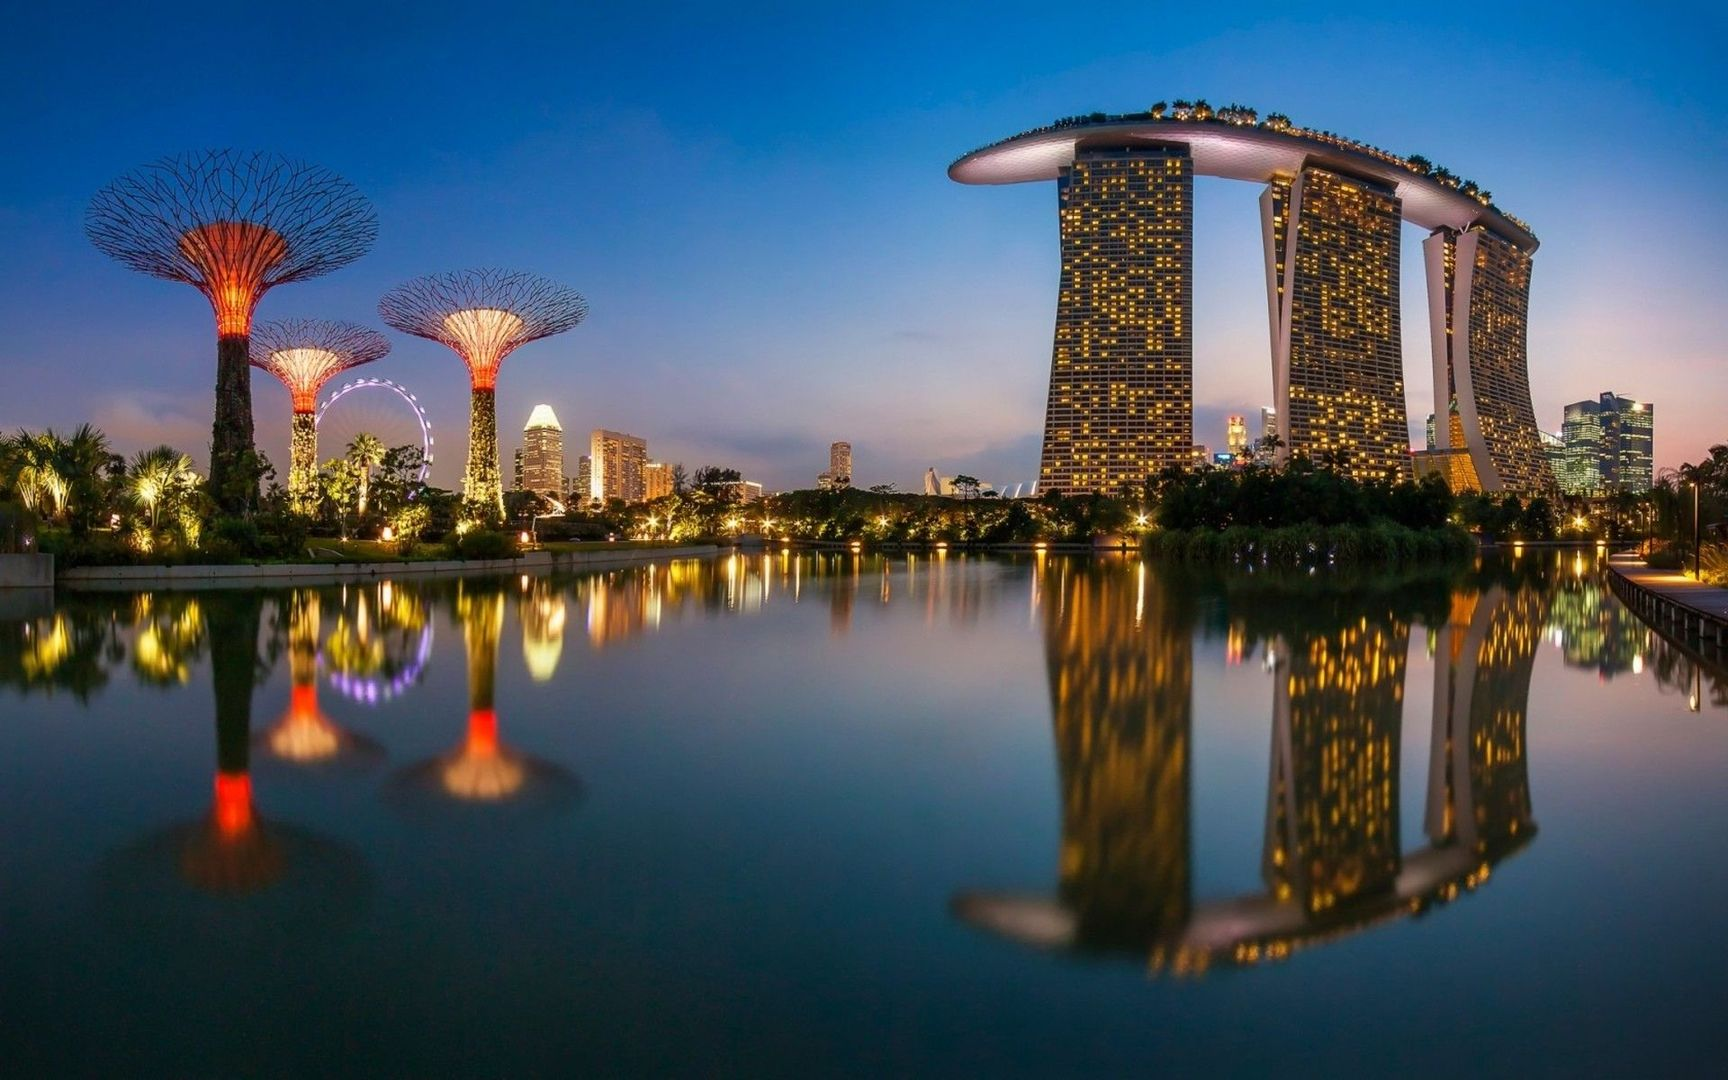 marina bay sands singapore TOP 10 of the most popular cities among fans of gambling